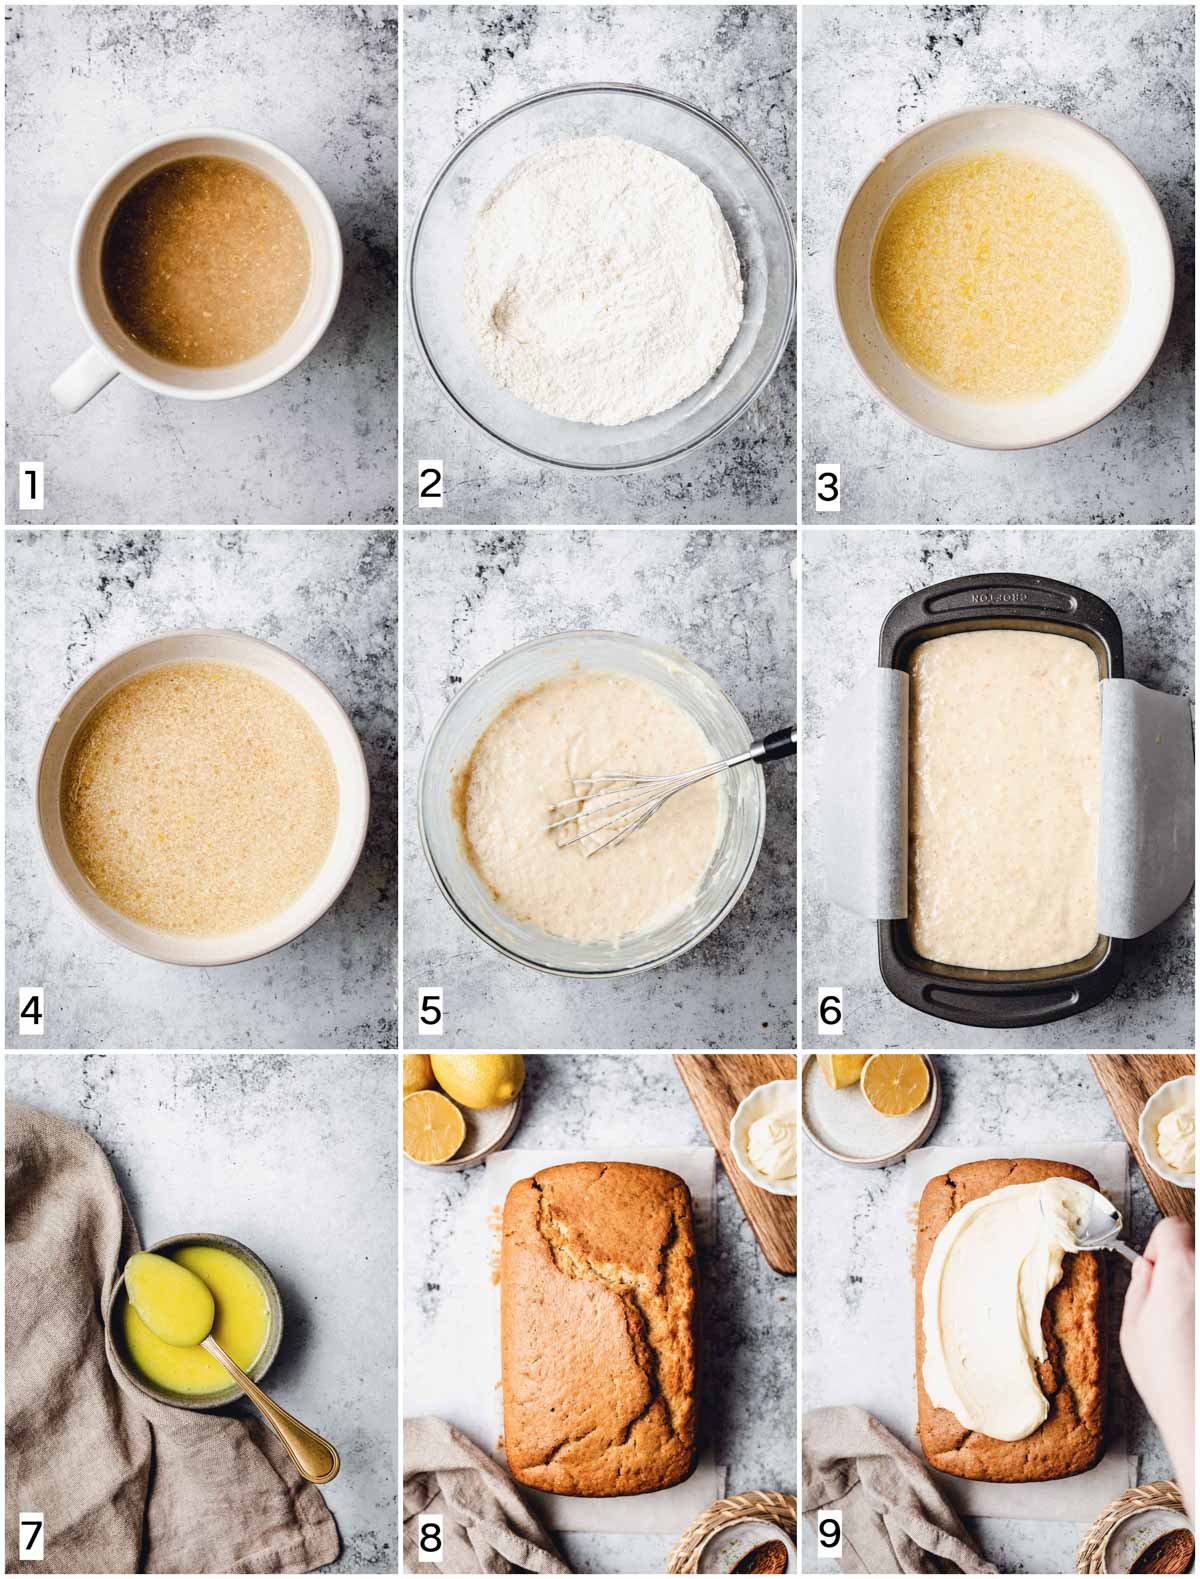 A collage of nine images showing nine steps in baking a loaf cake.